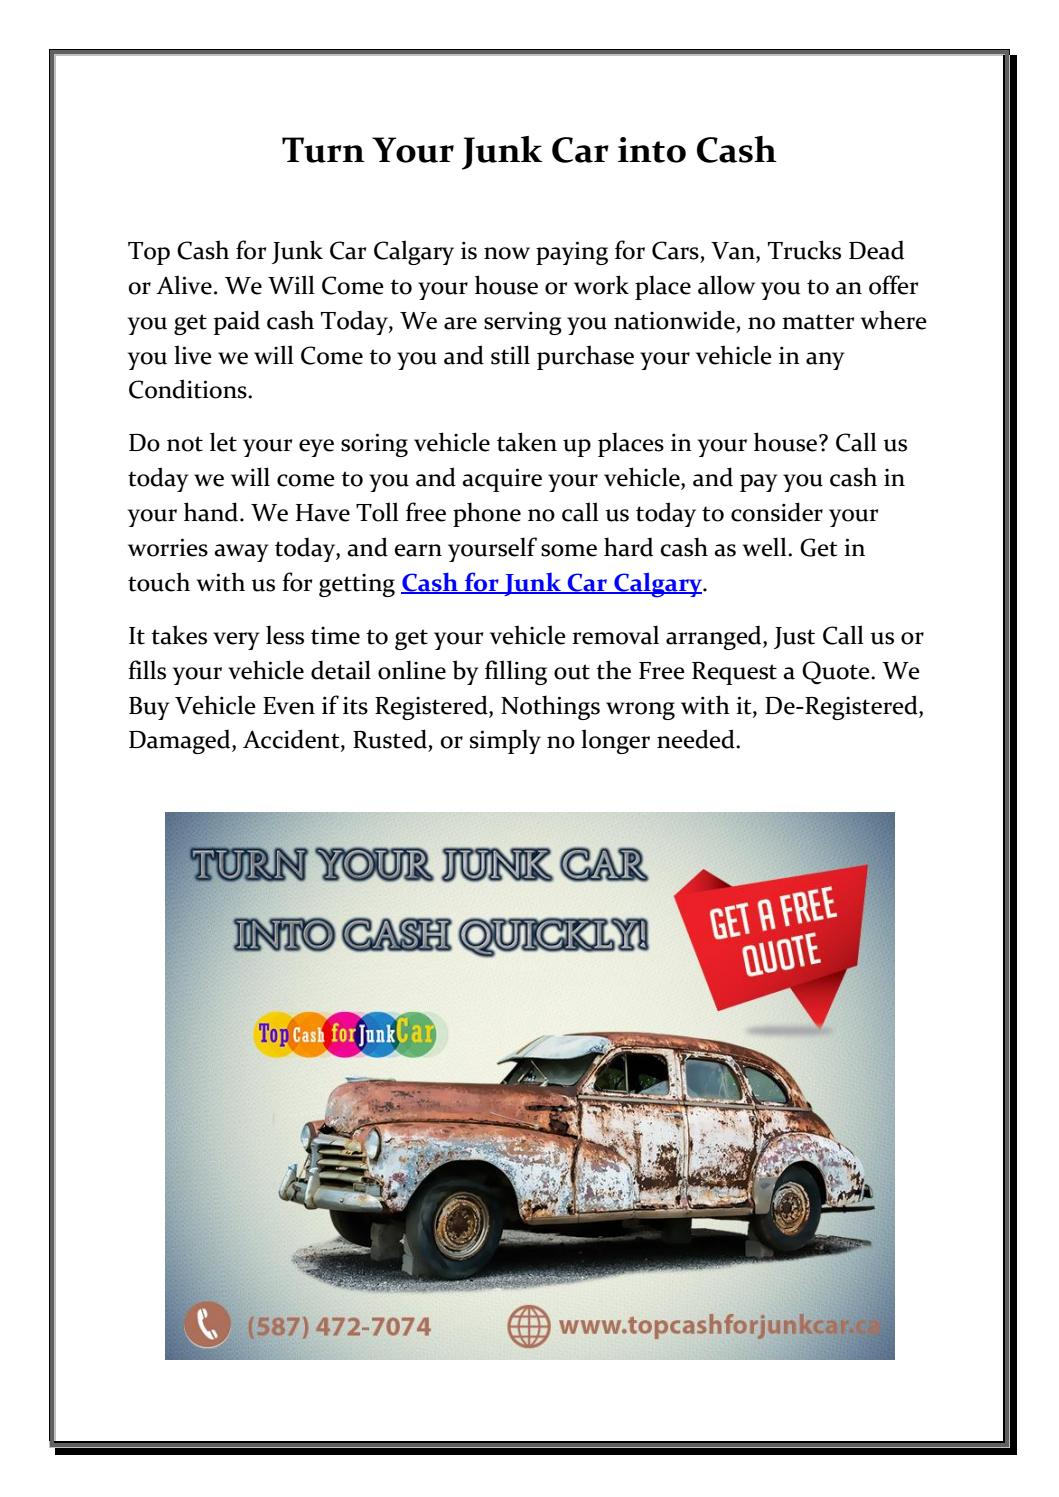 Cash for Junk Car Calgary by Top Cash for Junk Car - issuu